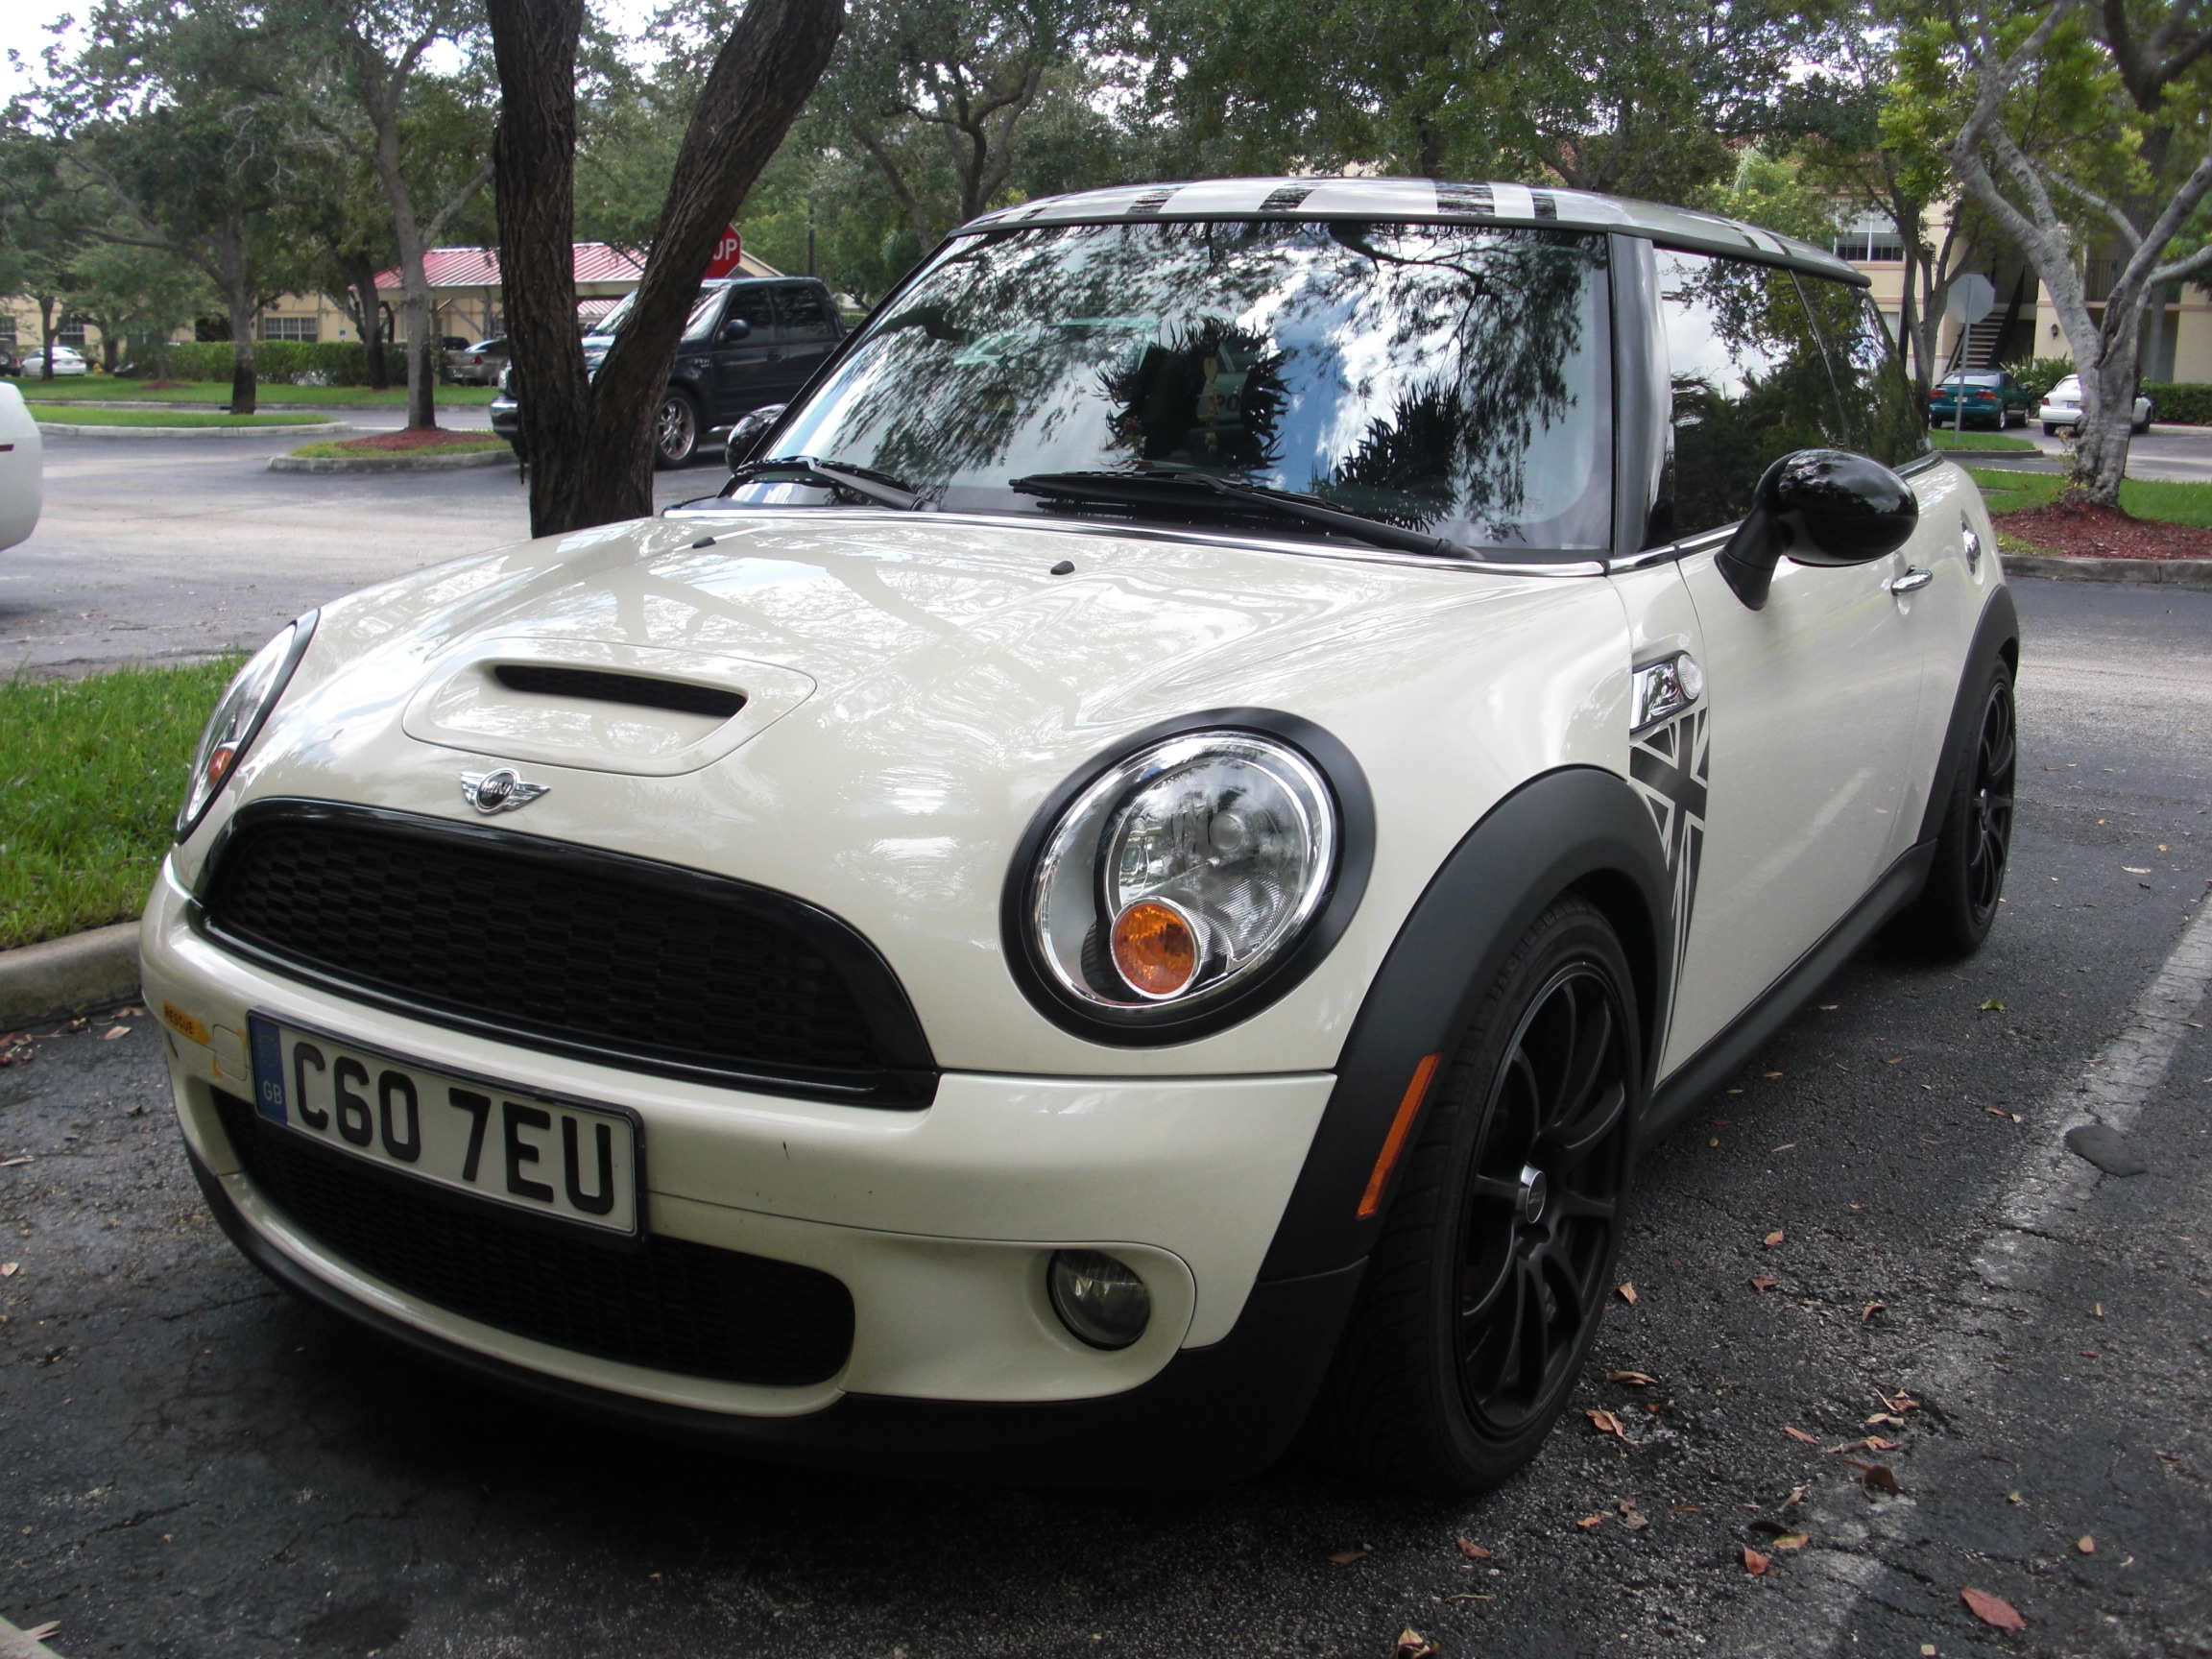 100-PercentJuice 2009 MINI Cooper 13339670